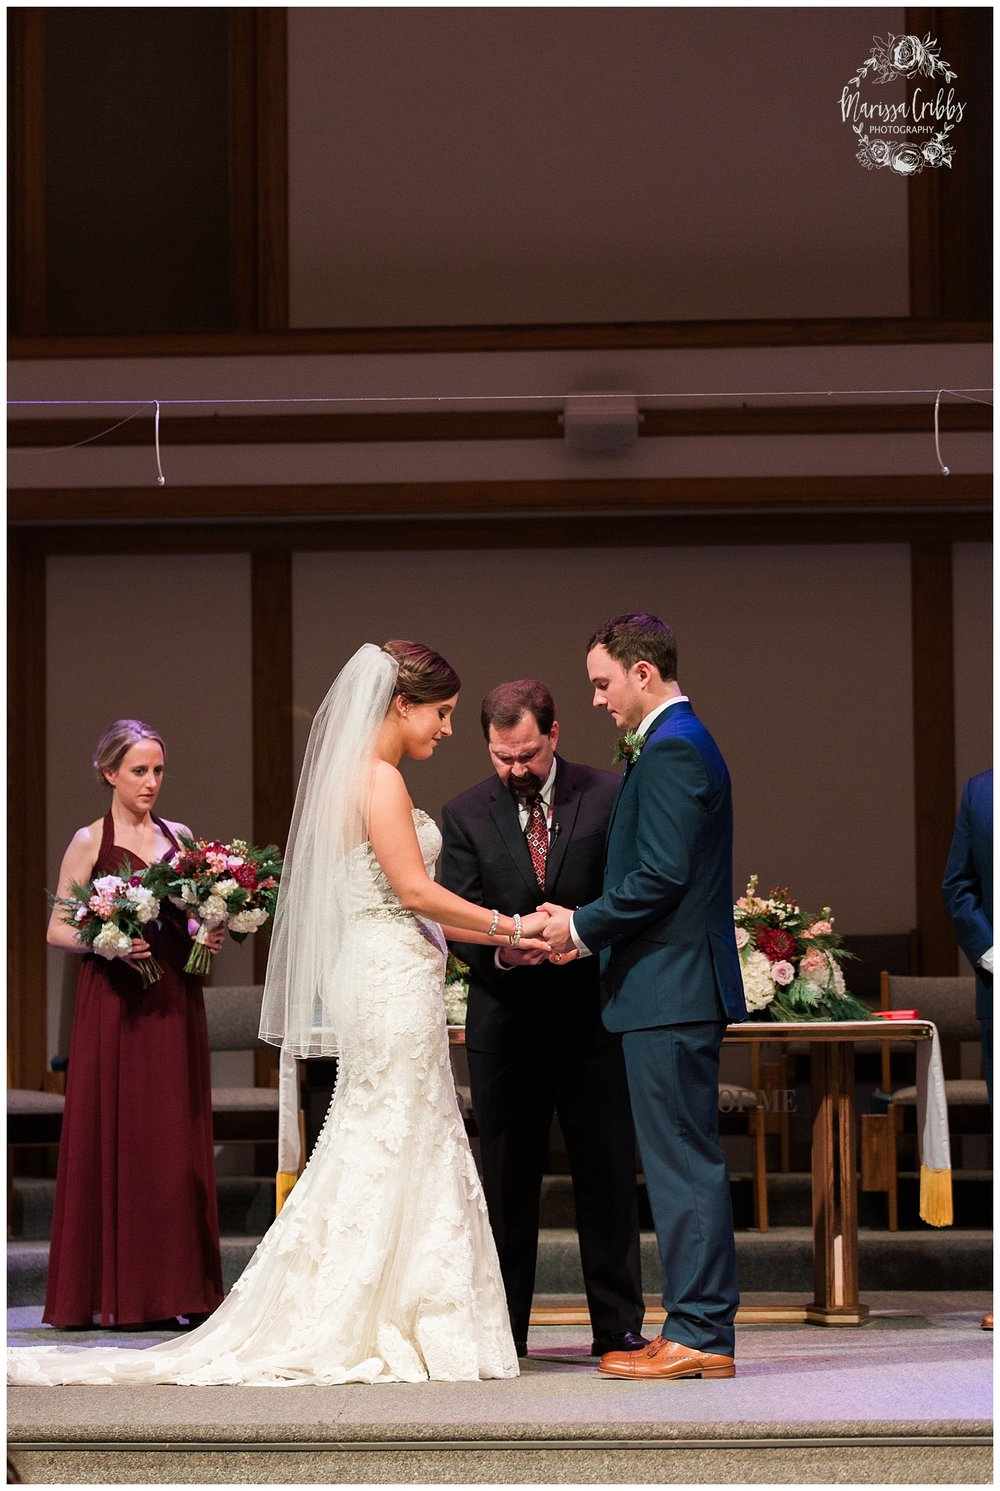 Kelsey & Cory | The Venue at Willow Creek Wedding | Kauffman Performing Arts | Marissa Cribbs Photography | KC Wedding Photographer_0401.jpg